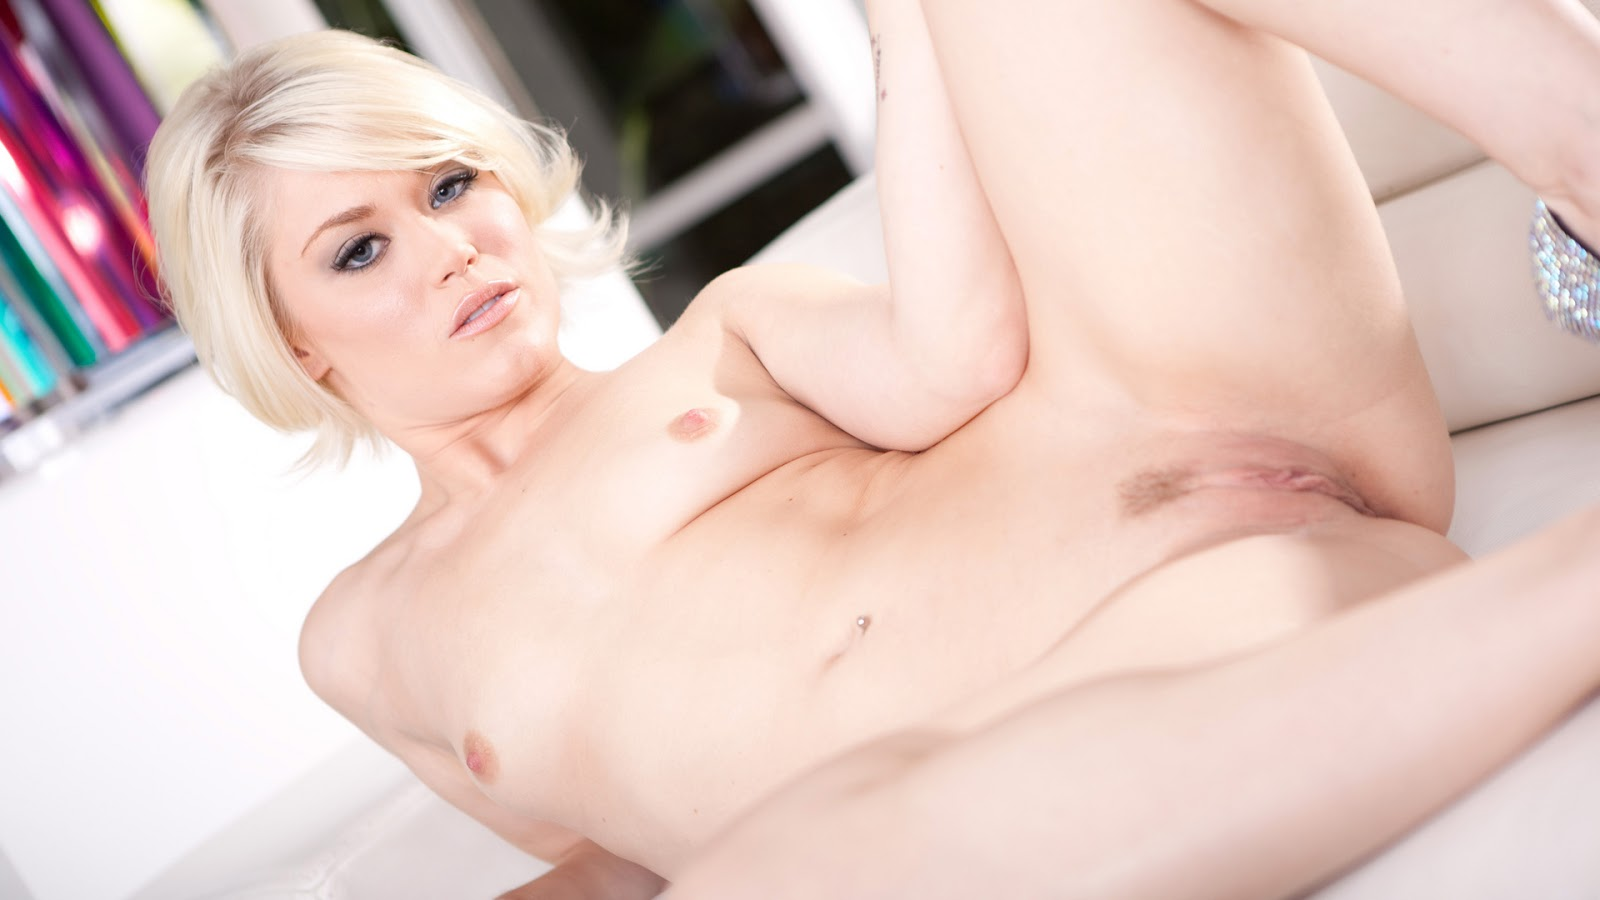 Ash hollywood blonde nude naked boobs pussy model